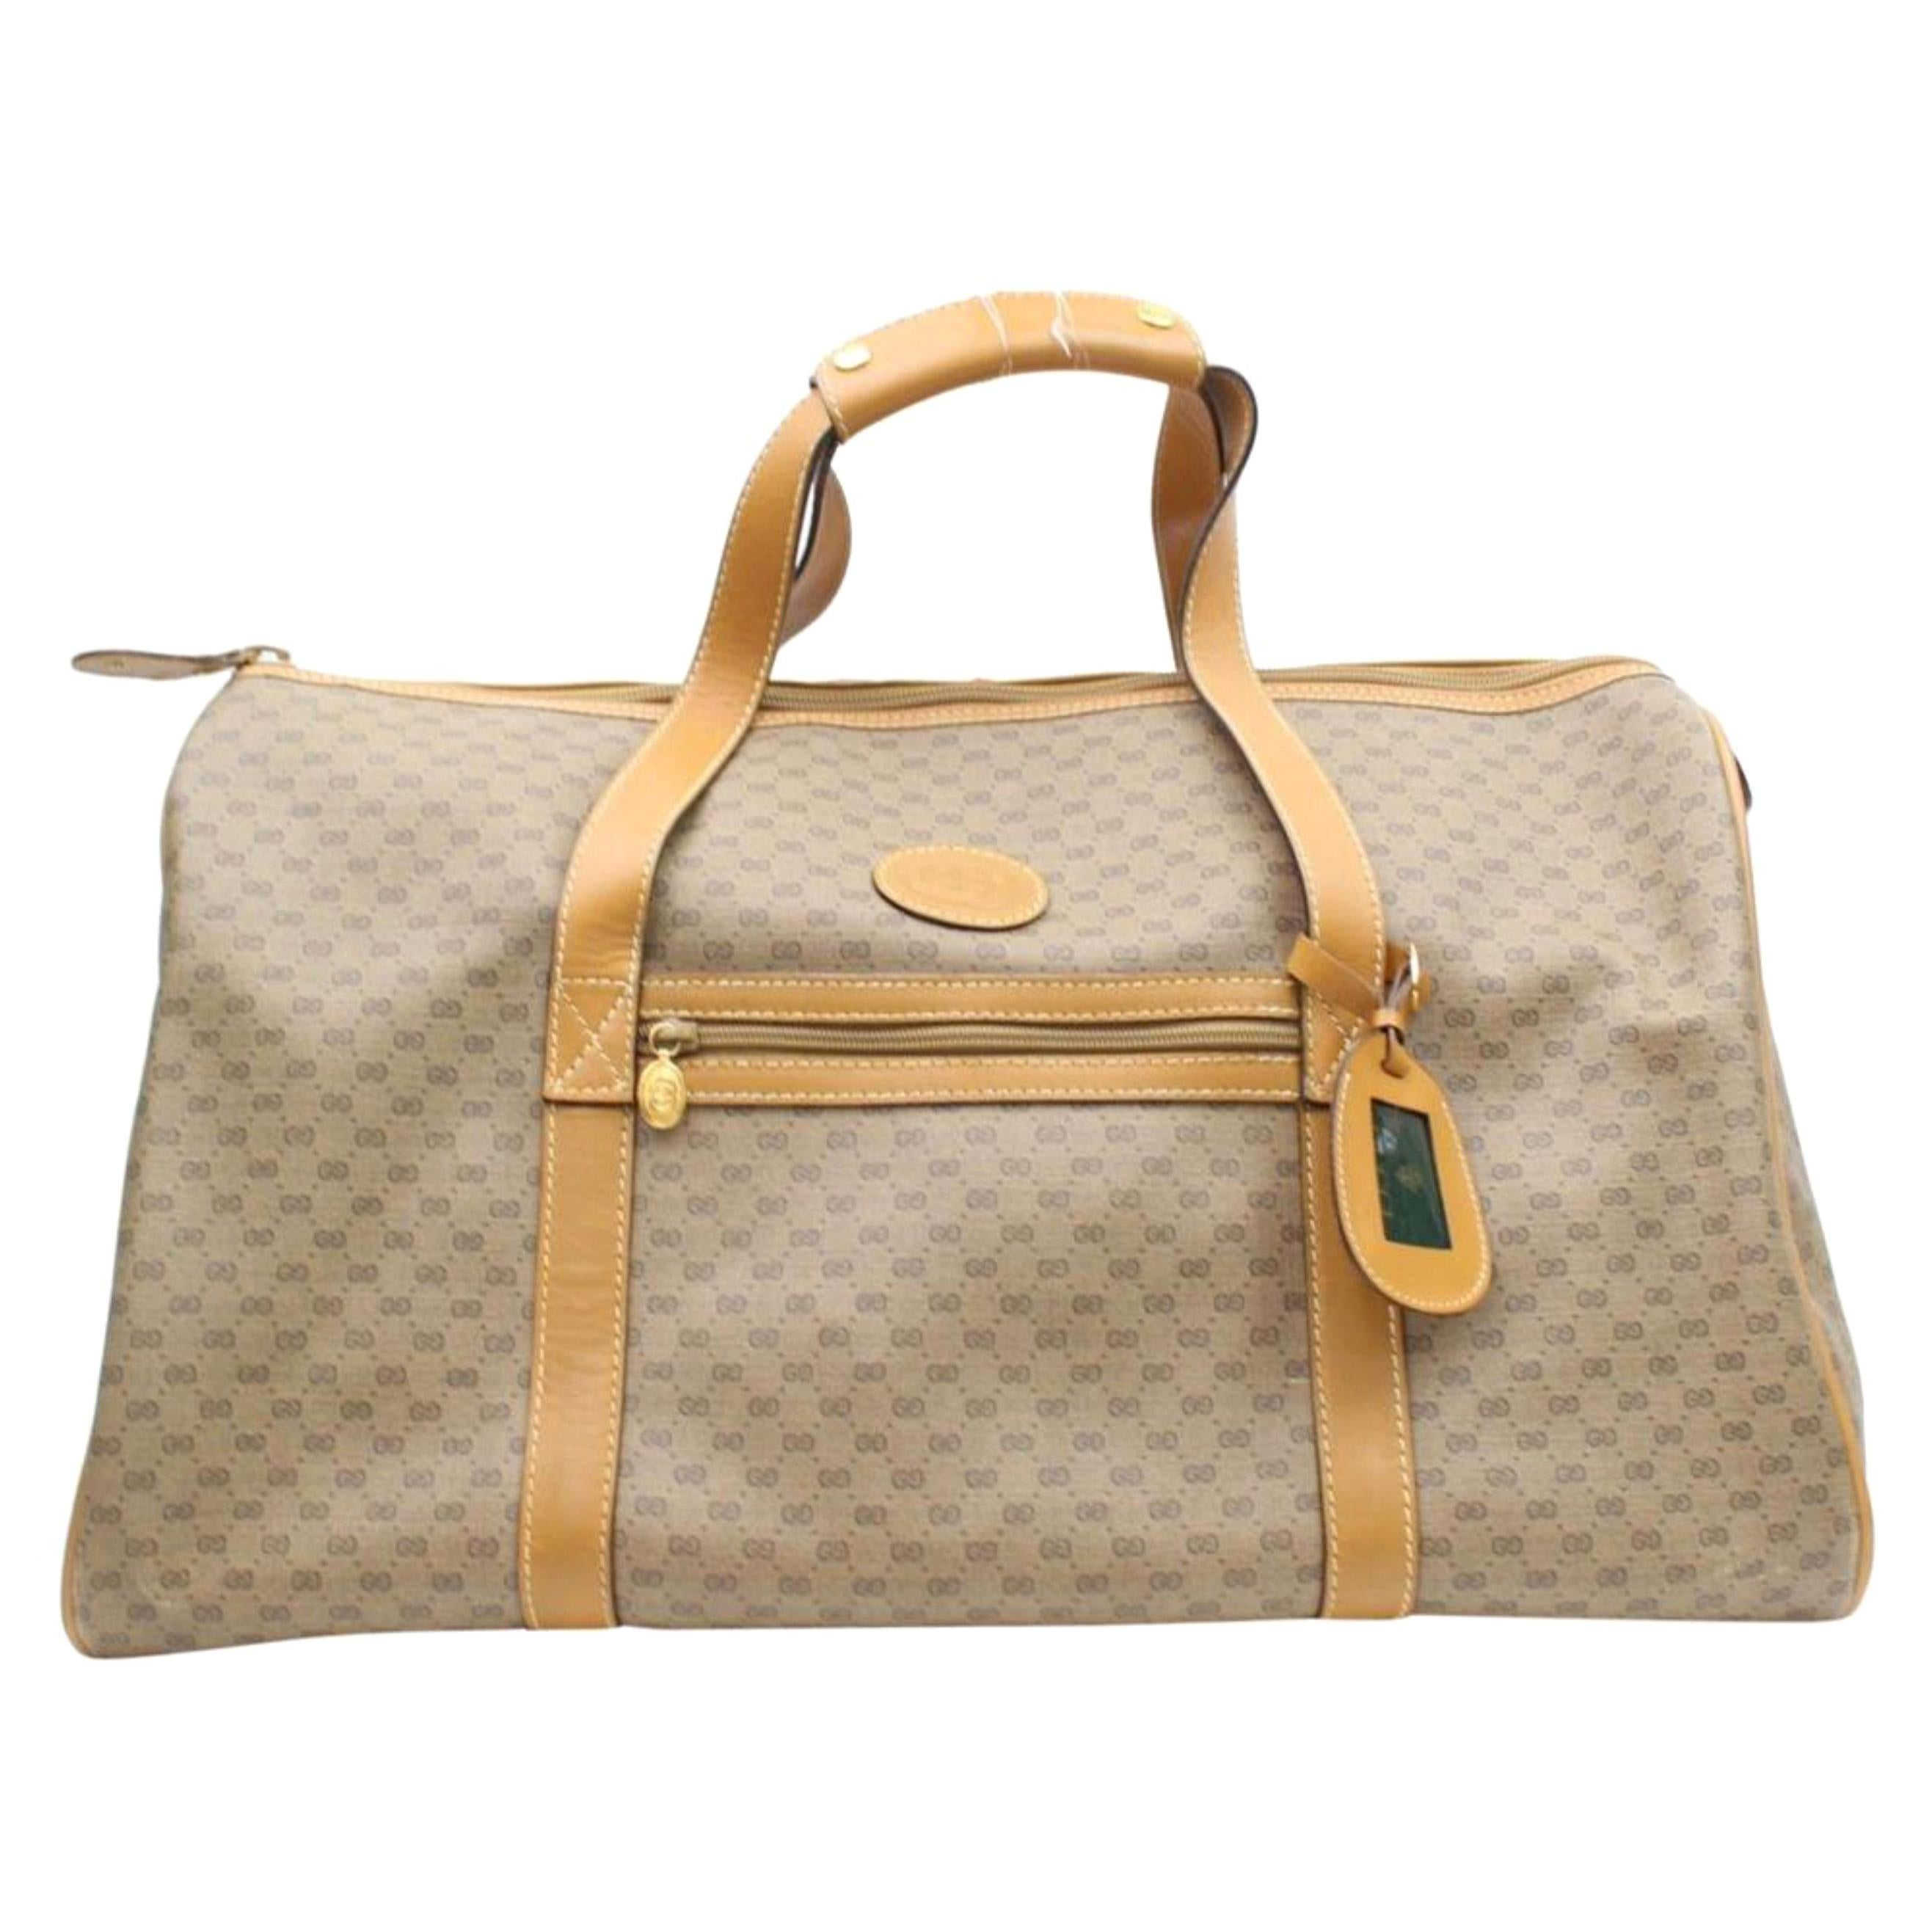 87a09c26bc8 Vintage Gucci Luggage and Travel Bags - 84 For Sale at 1stdibs